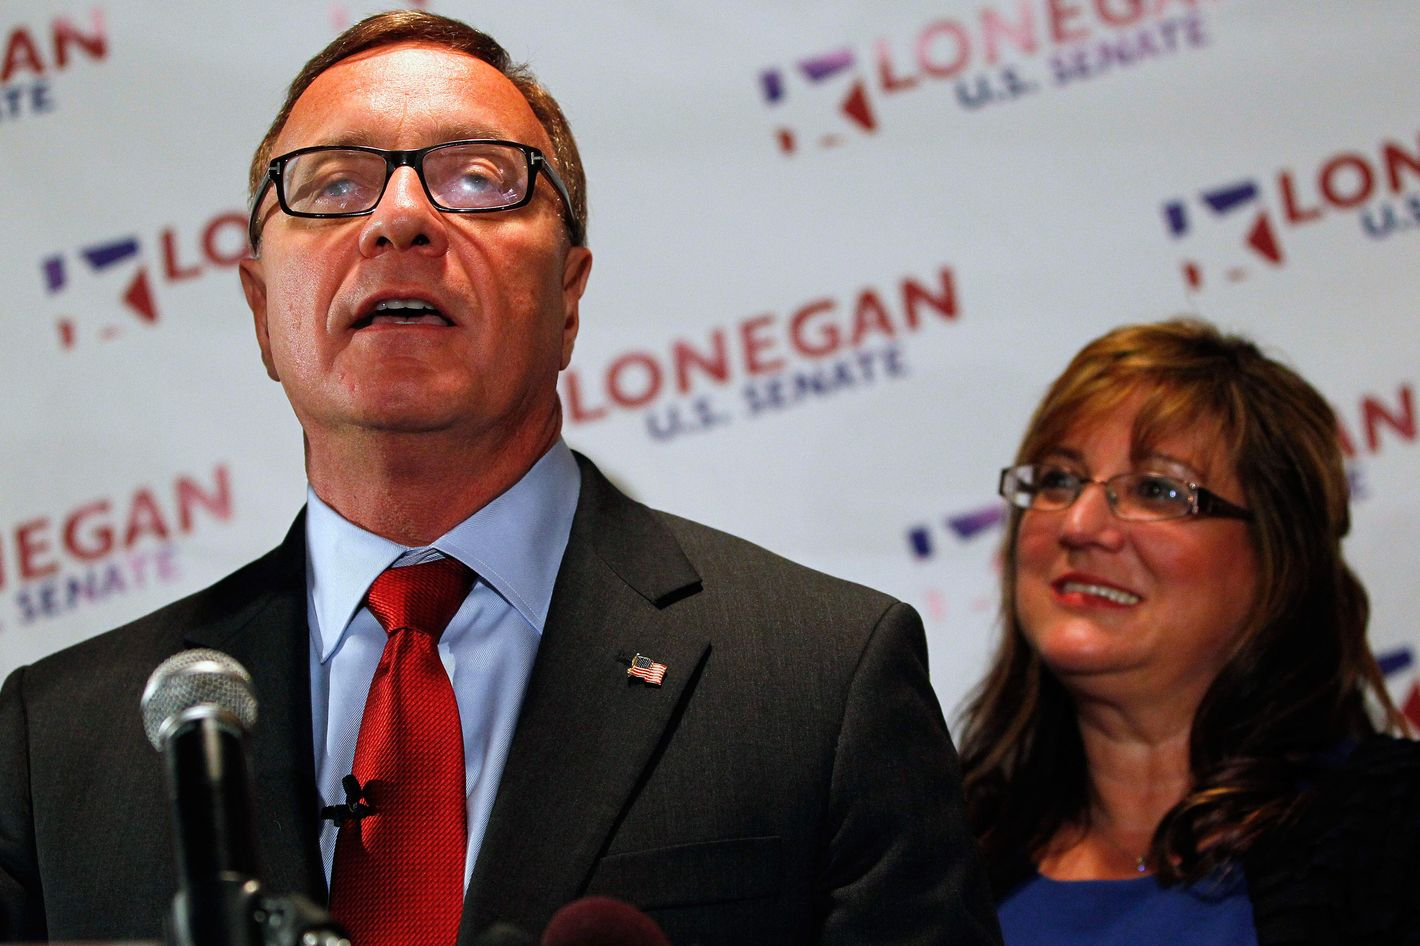 Republican U.S. Senate candidate Steve Lonegan with his wife Lorraine by his side, makes his victory speech after defeating Alieta Eck for the nomination in the special election primary in Secaucus, N.J. Tuesday, Aug. 13, 2013.